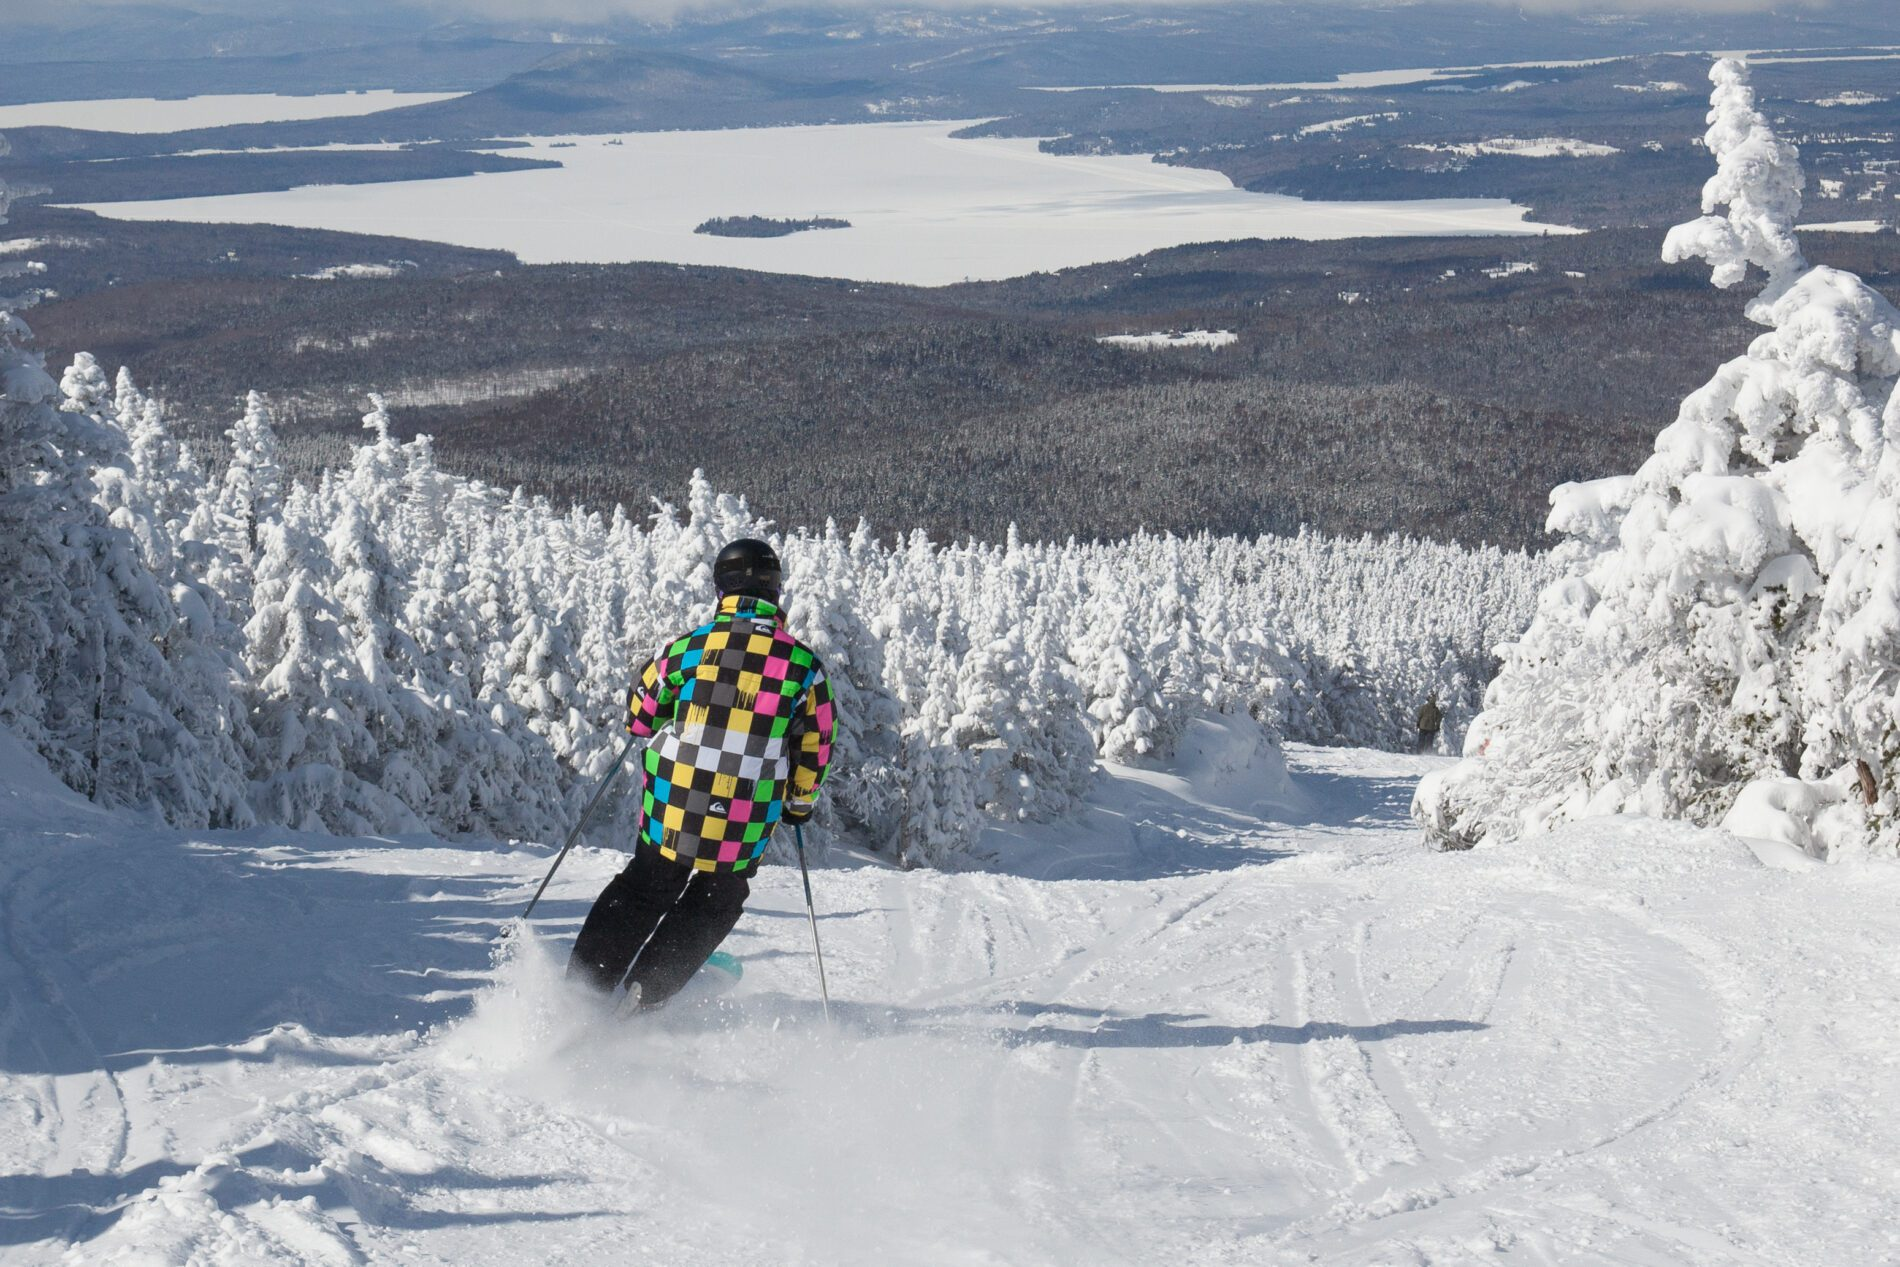 There's plenty of downhill skiing left to enjoy in Maine.